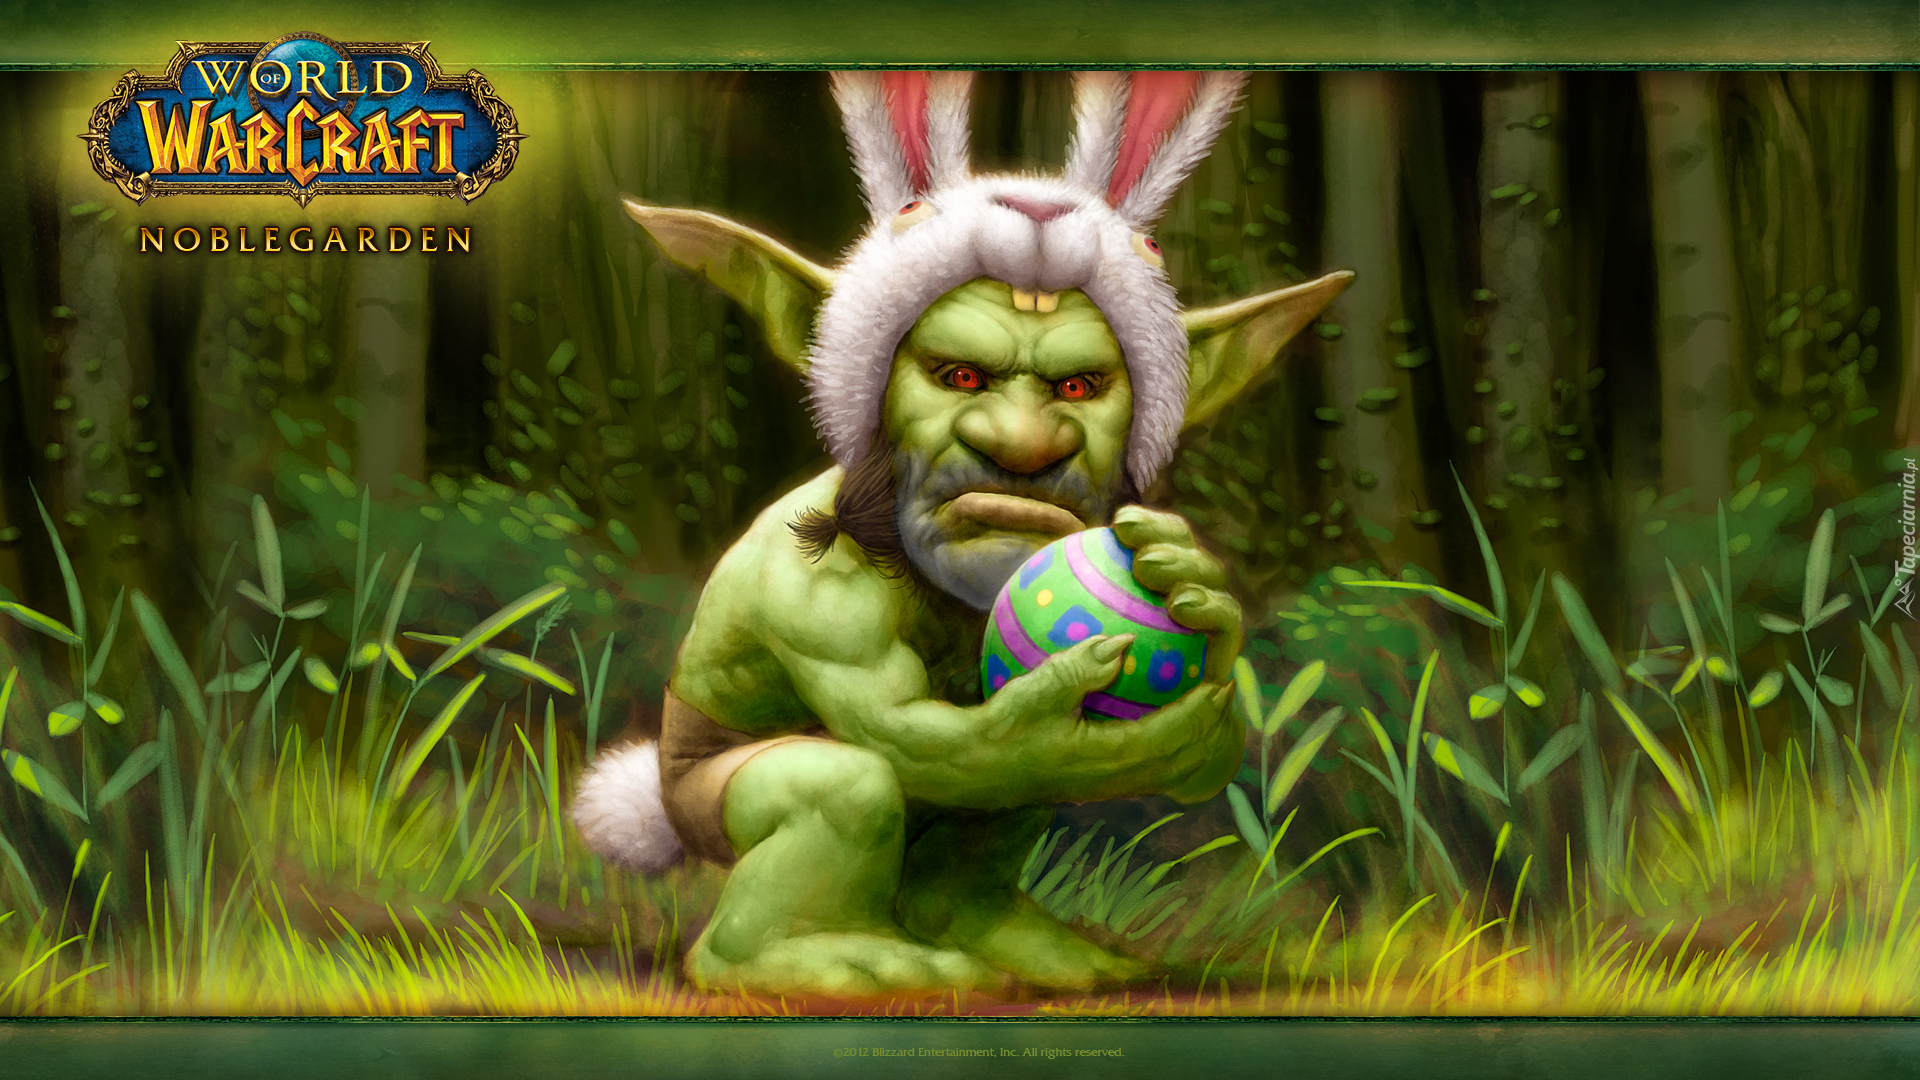 Gra, World of Warcraft Noblegarden, Goblin, Królik, Pisanka